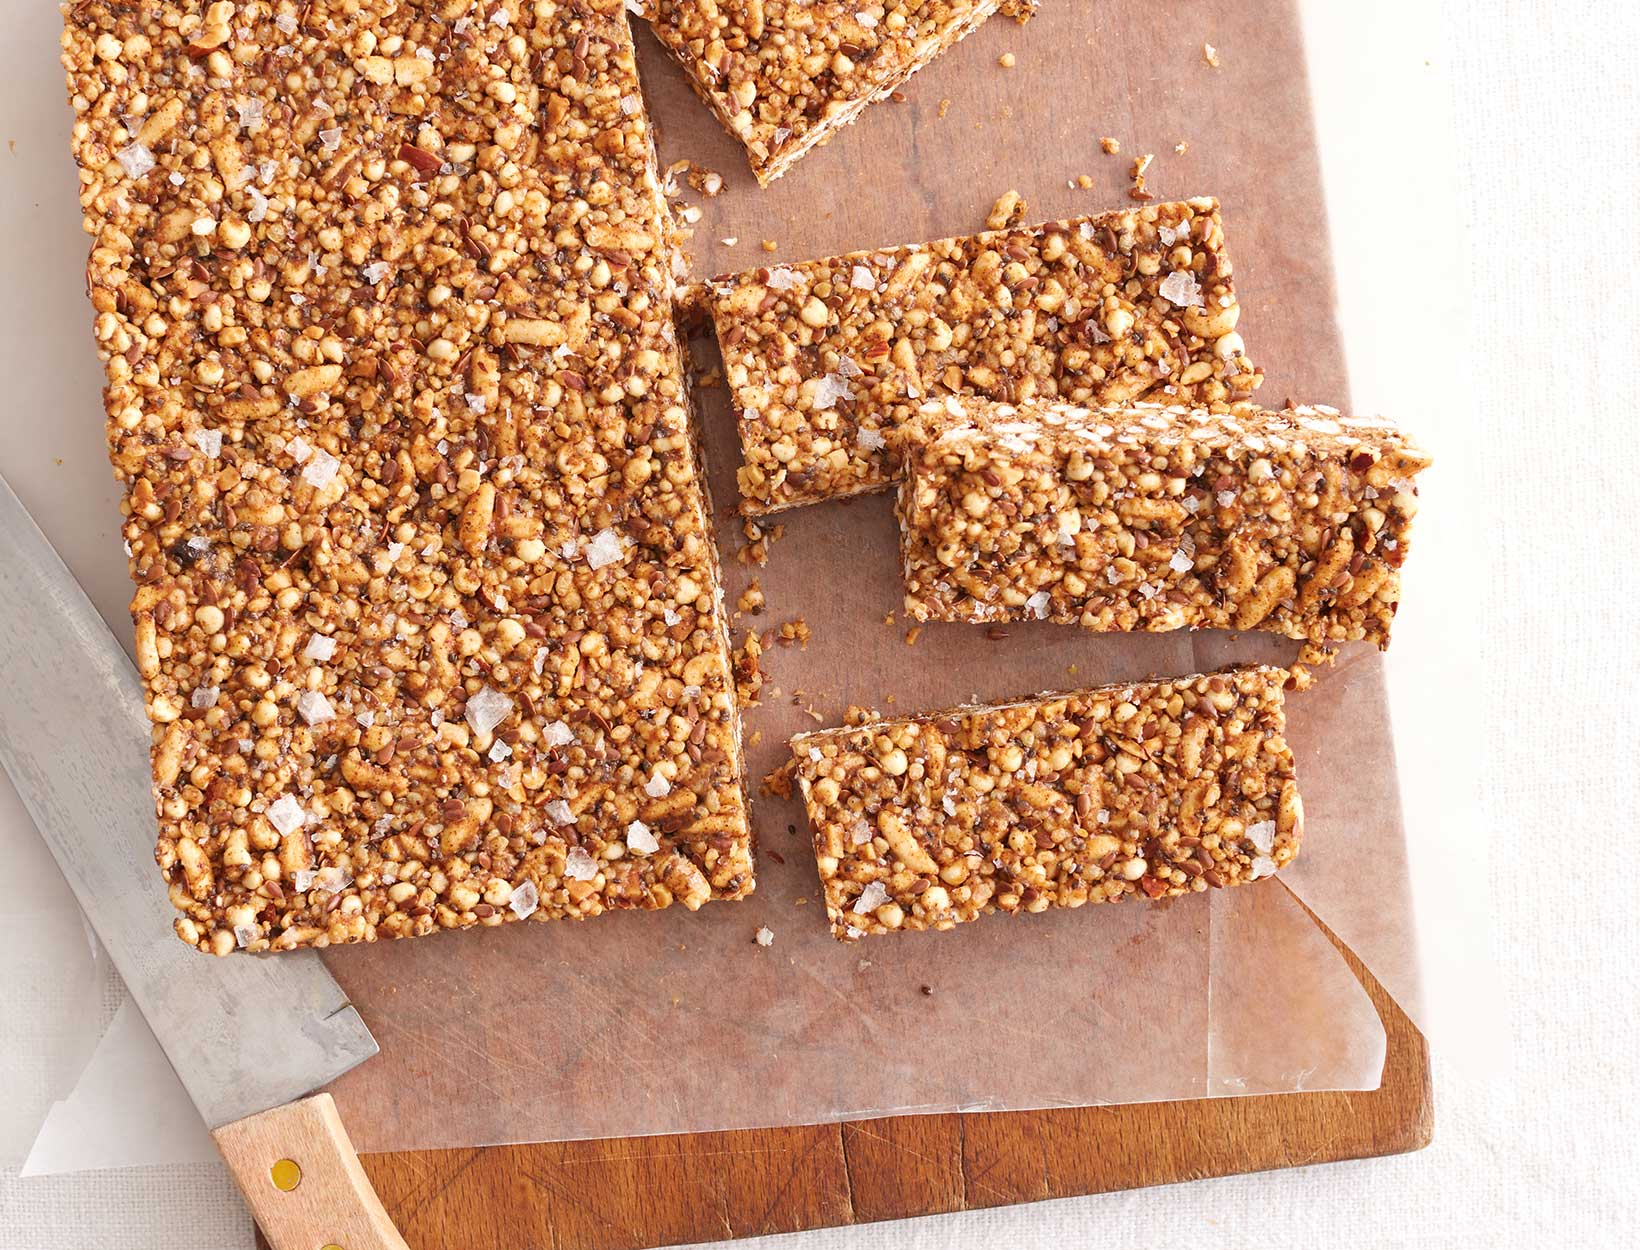 Grown-Up Cereal Bars with Almond Butter, Espresso, and Cardamom